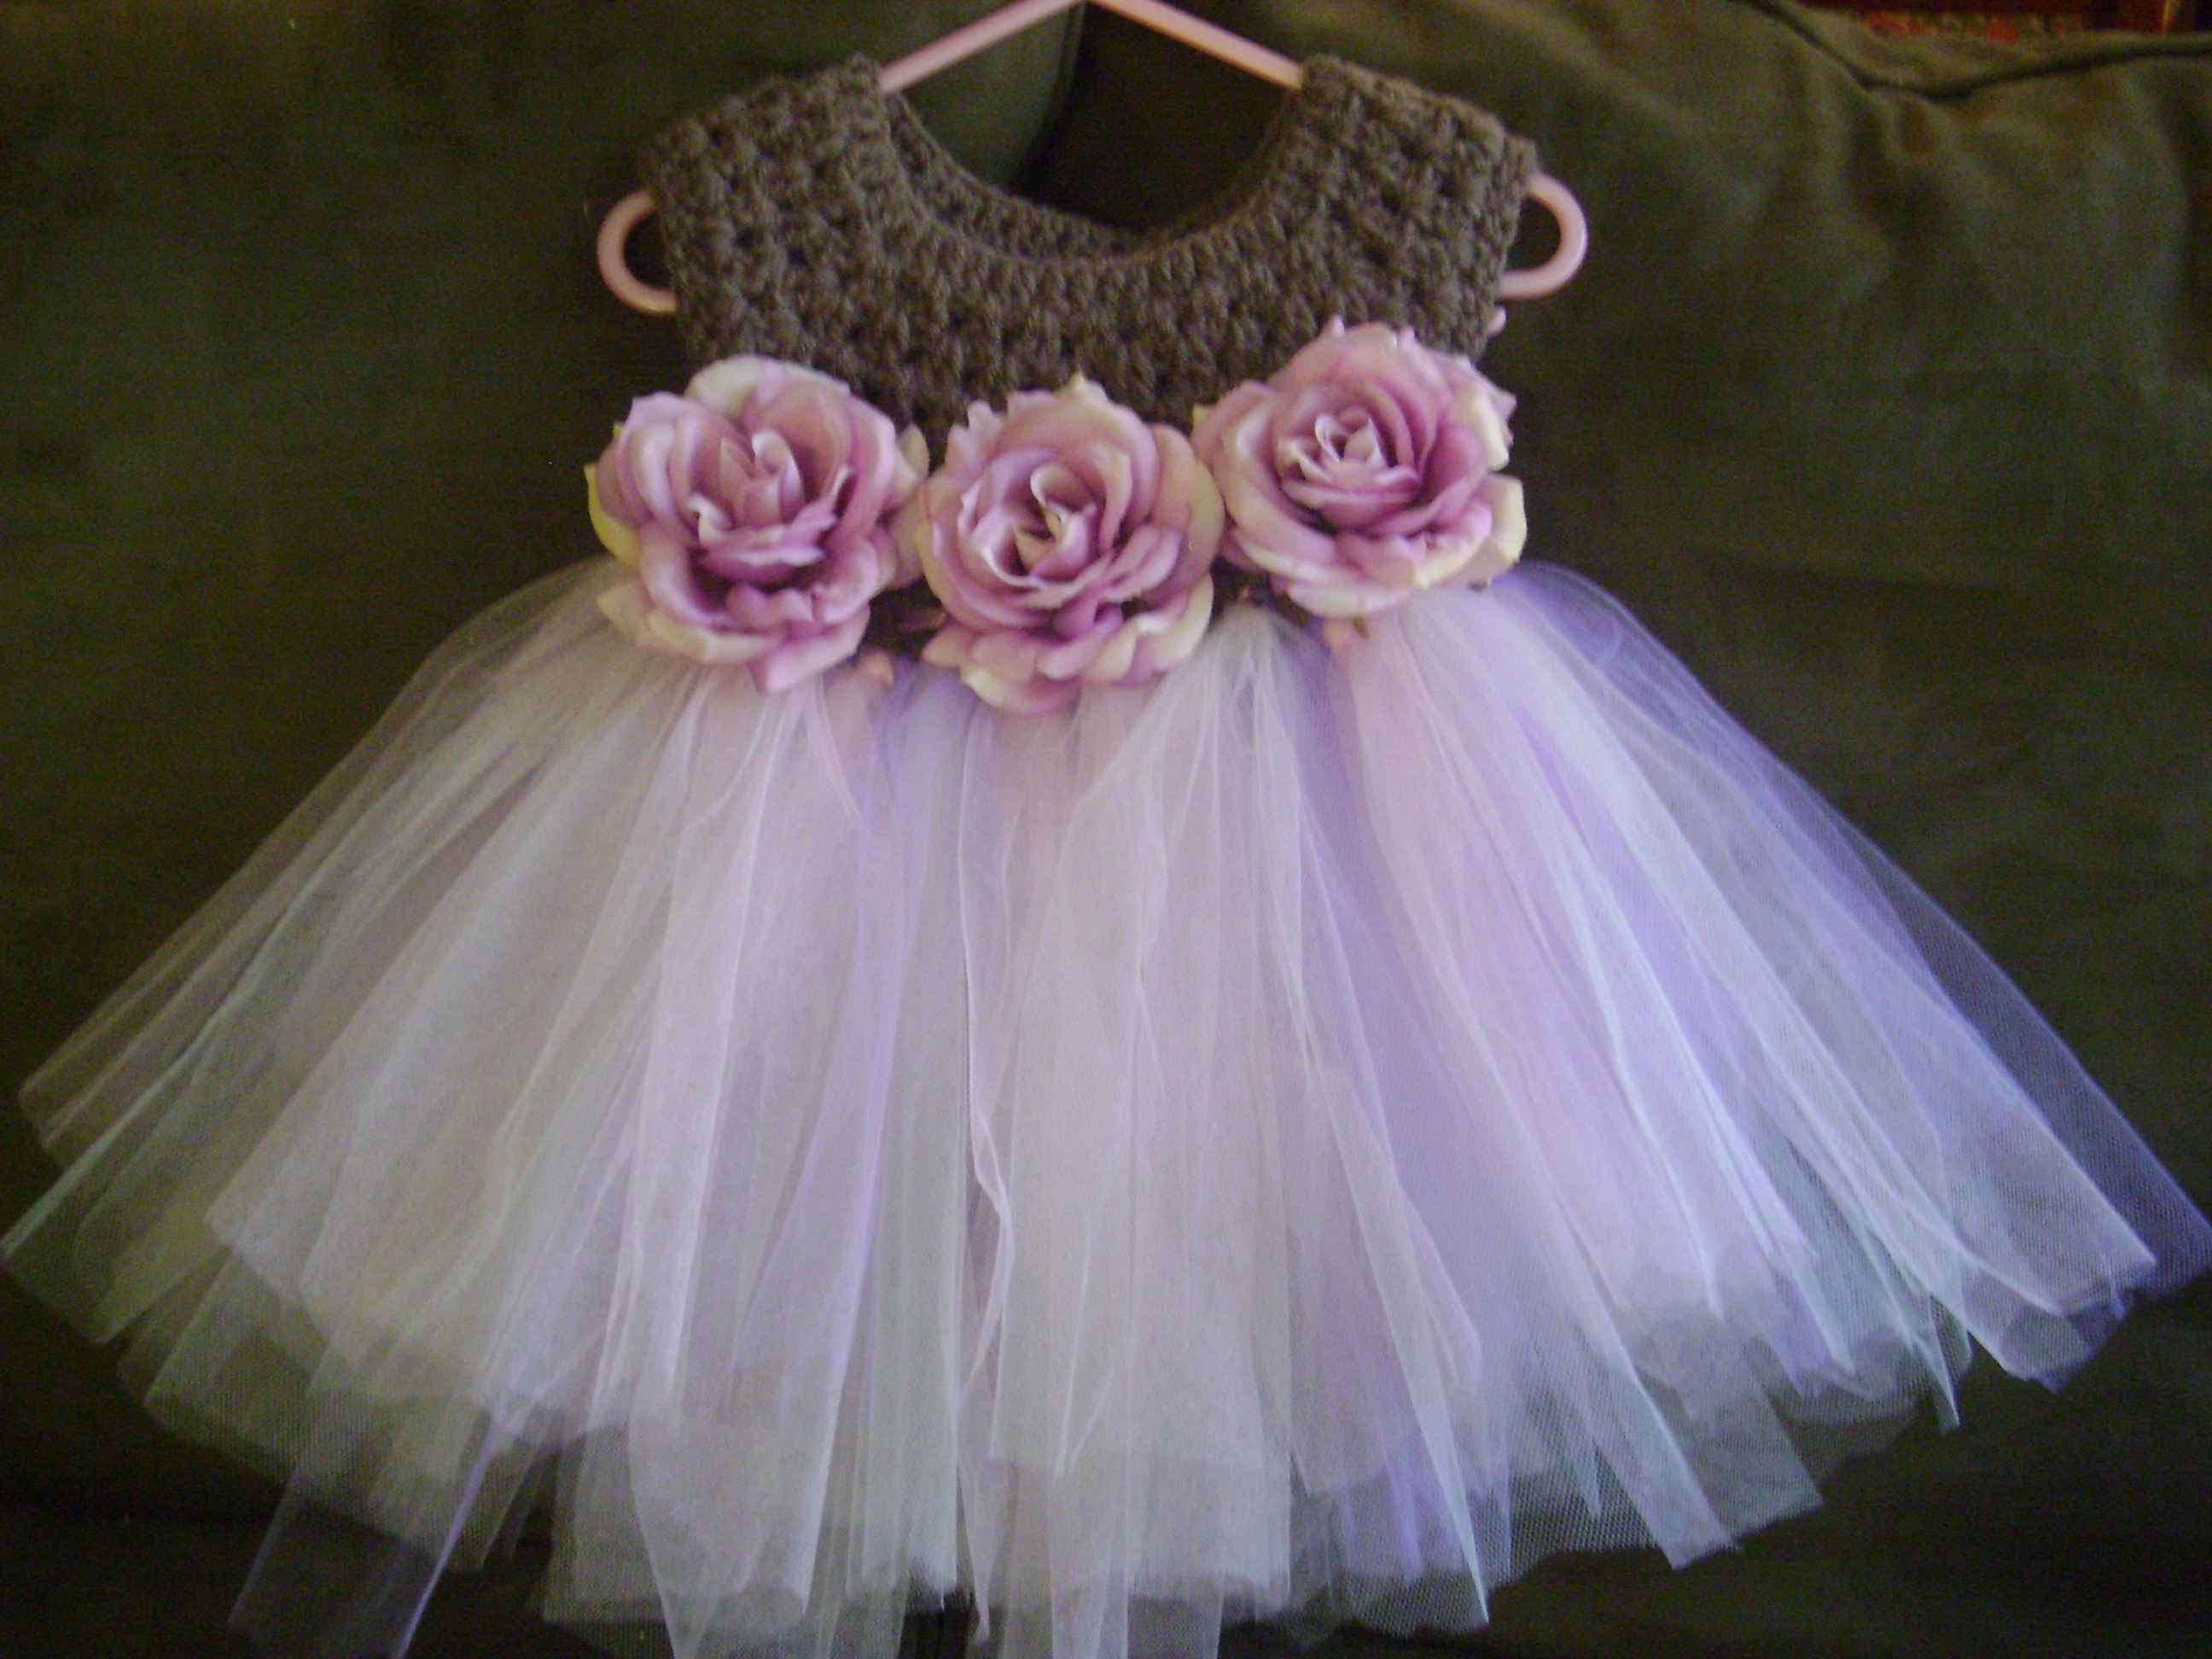 Diy tutu dress with crochet top Hairstyle for women & man